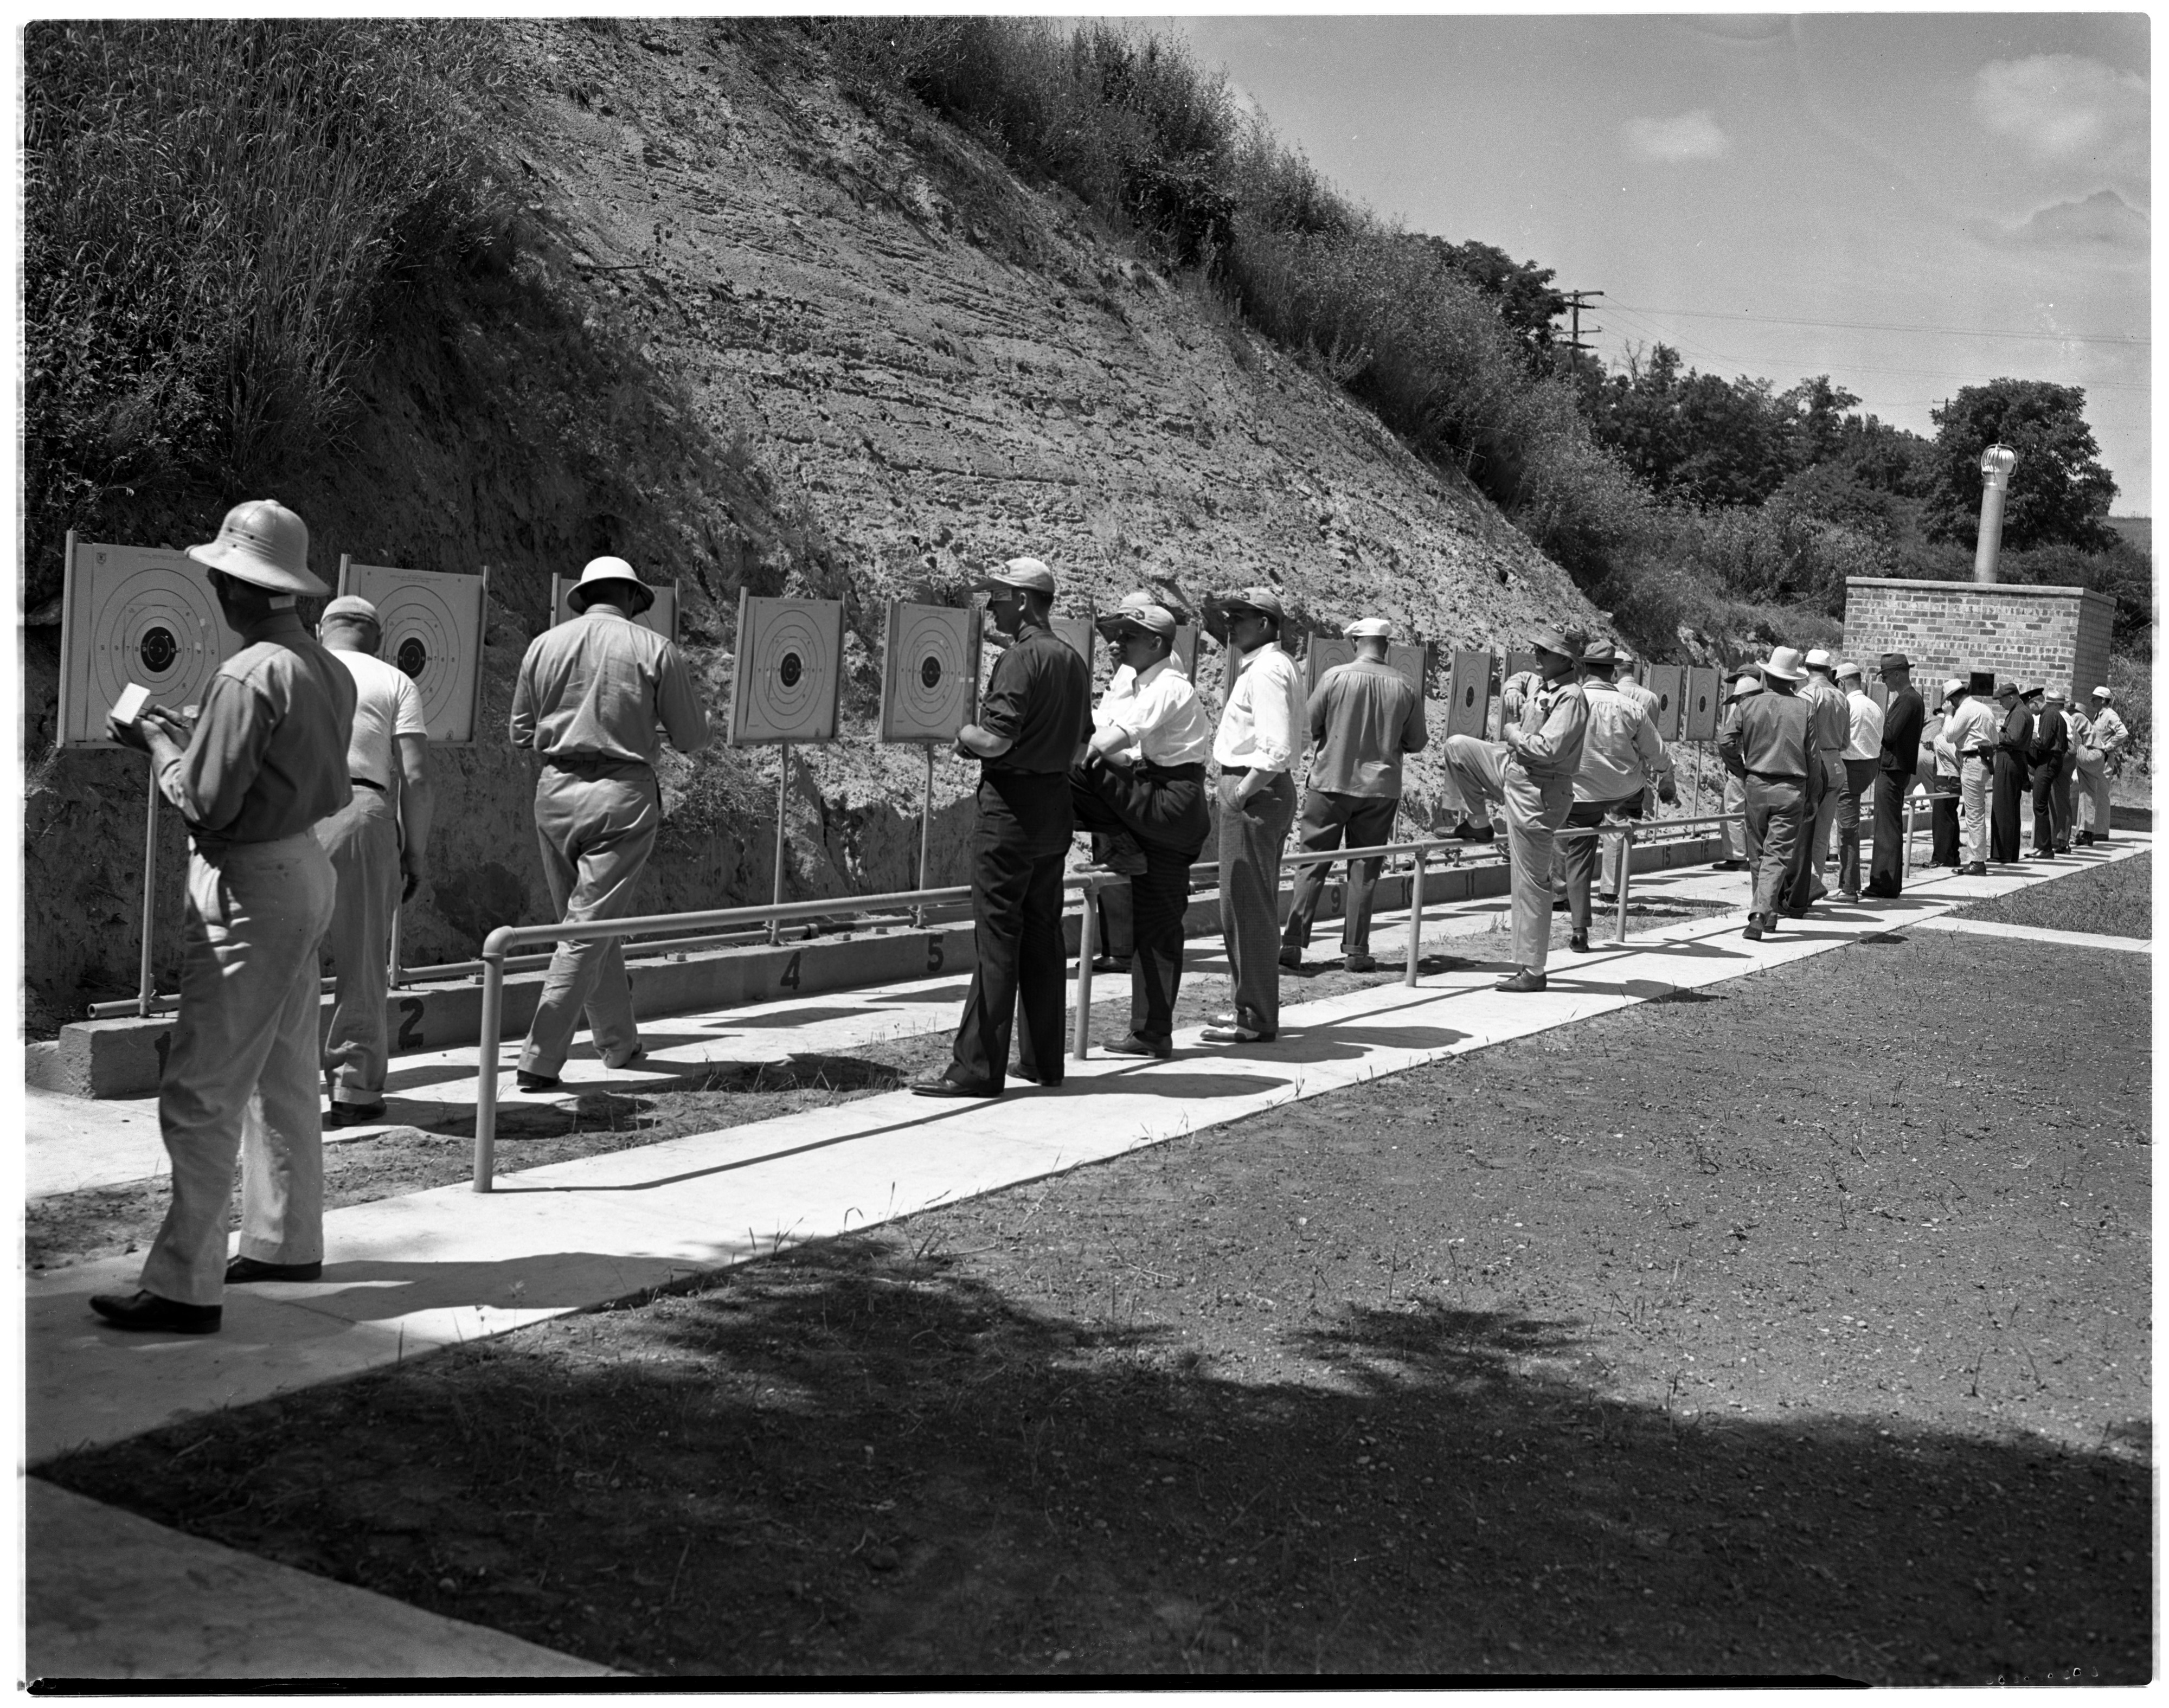 Targets Are Examined At The Ann Arbor Police Department's Invitational Pistol Match, July 1941 image